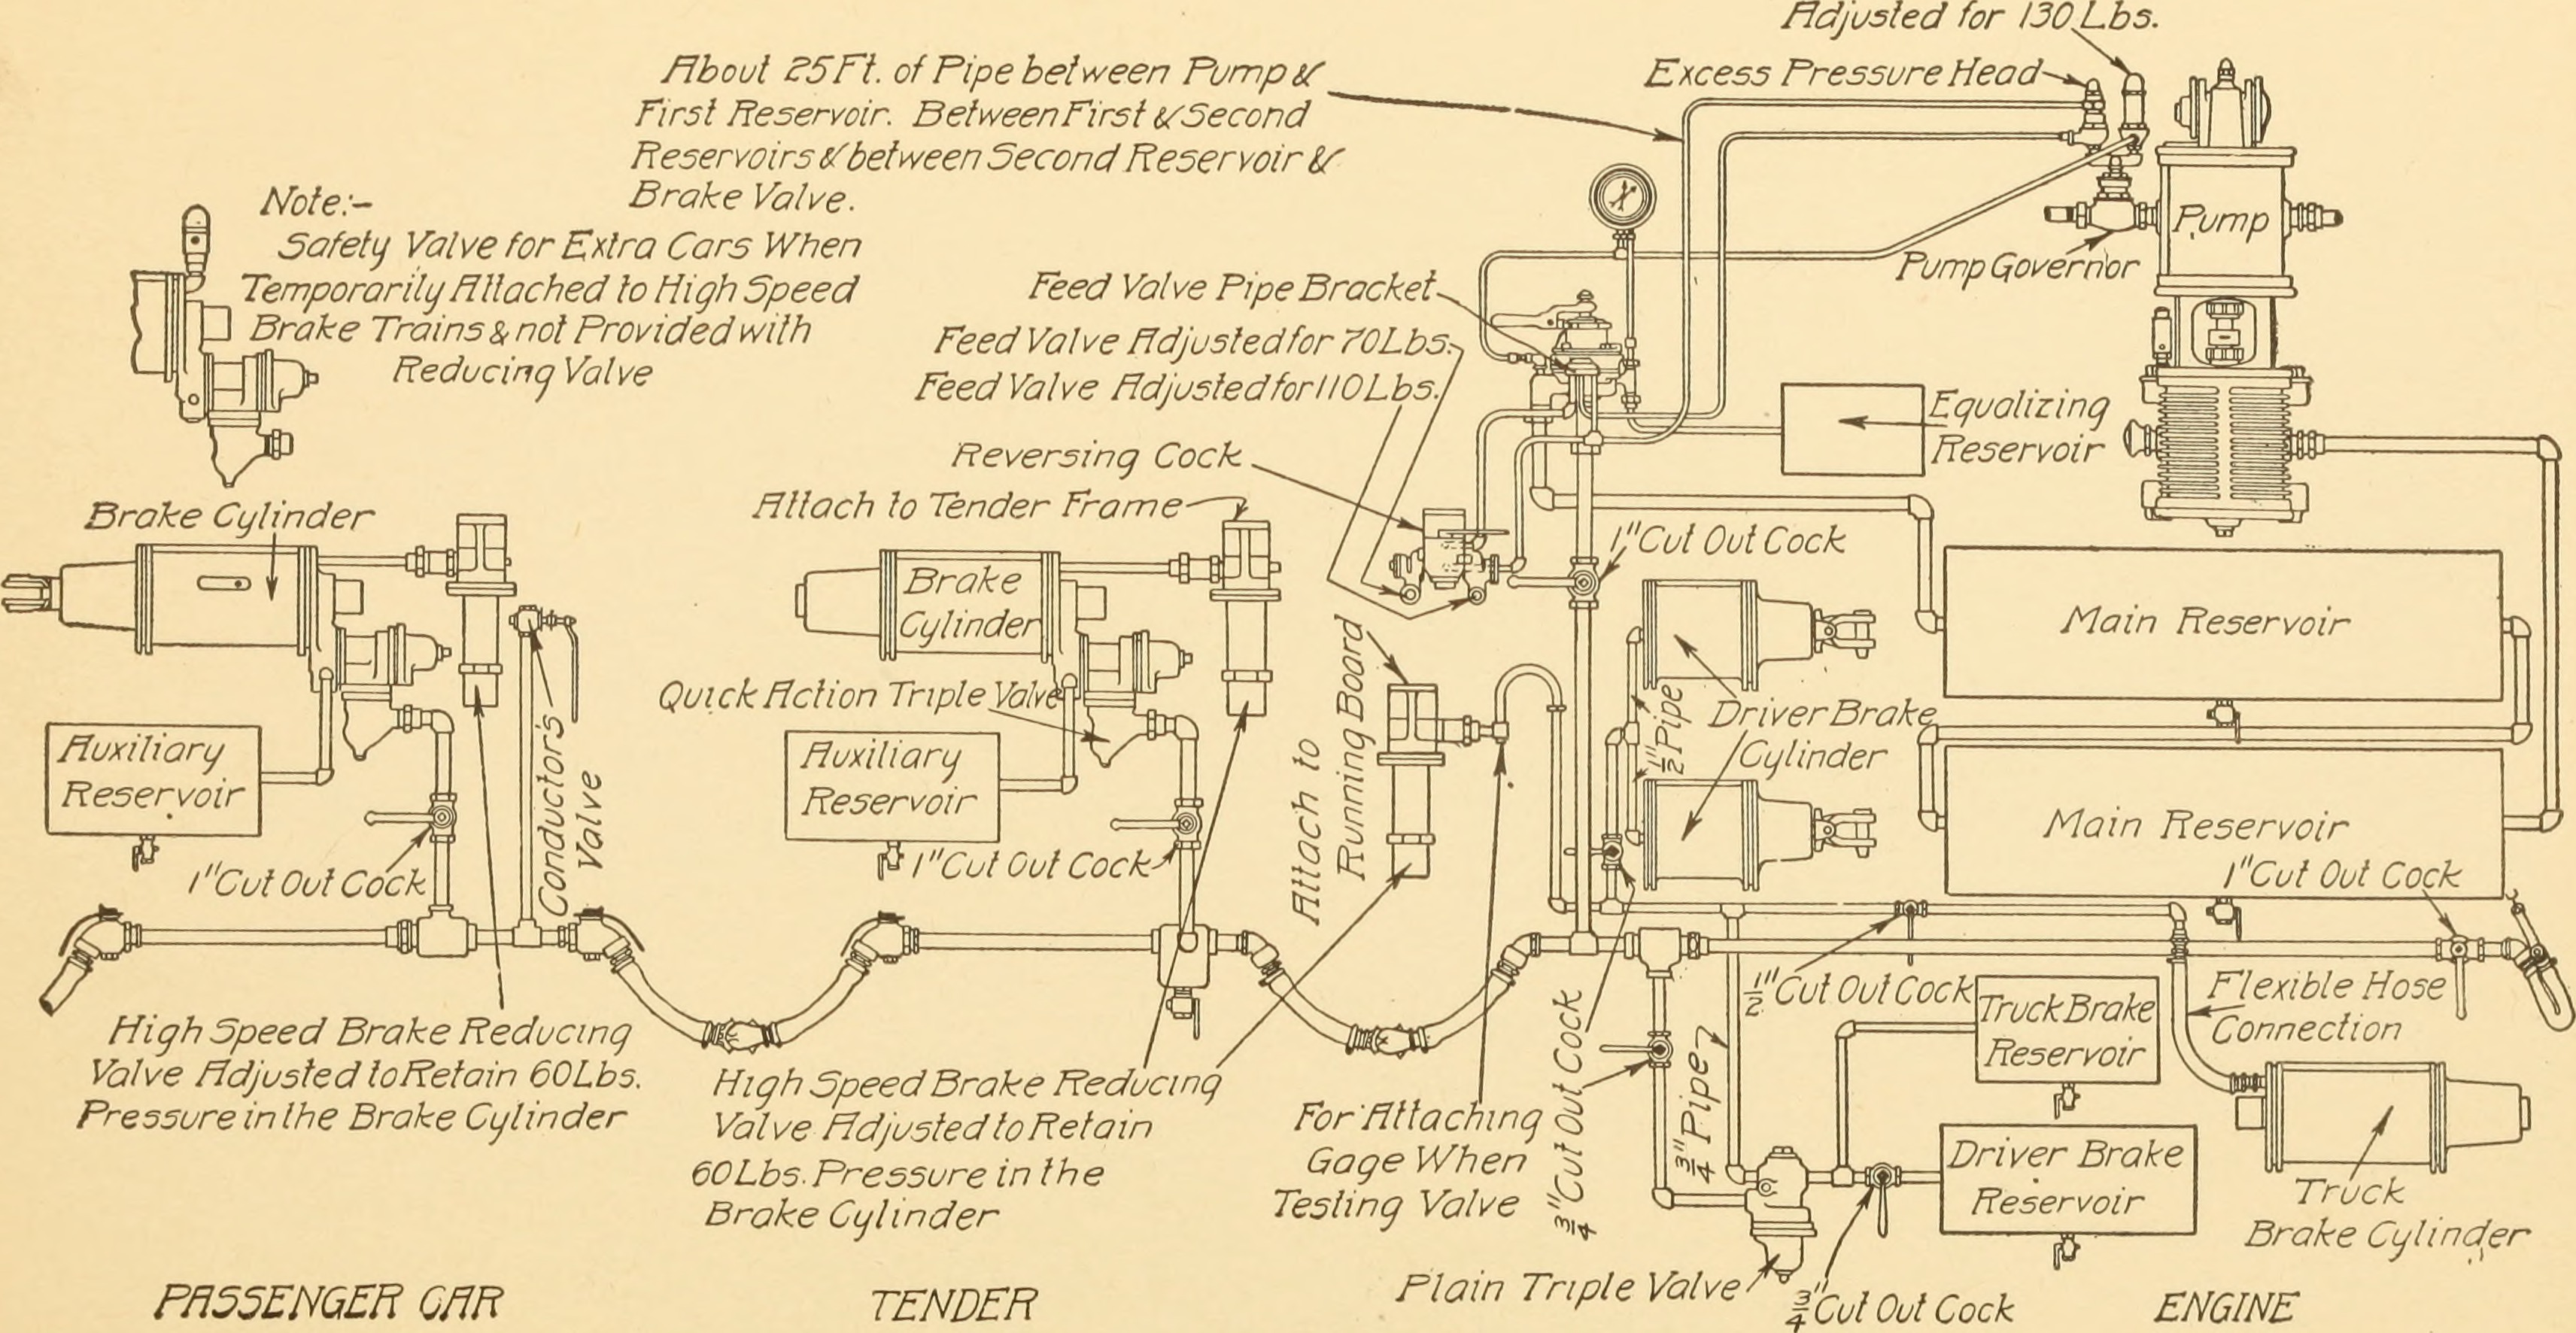 File:Air brakes, an up-to-date treatise on the Westinghouse air